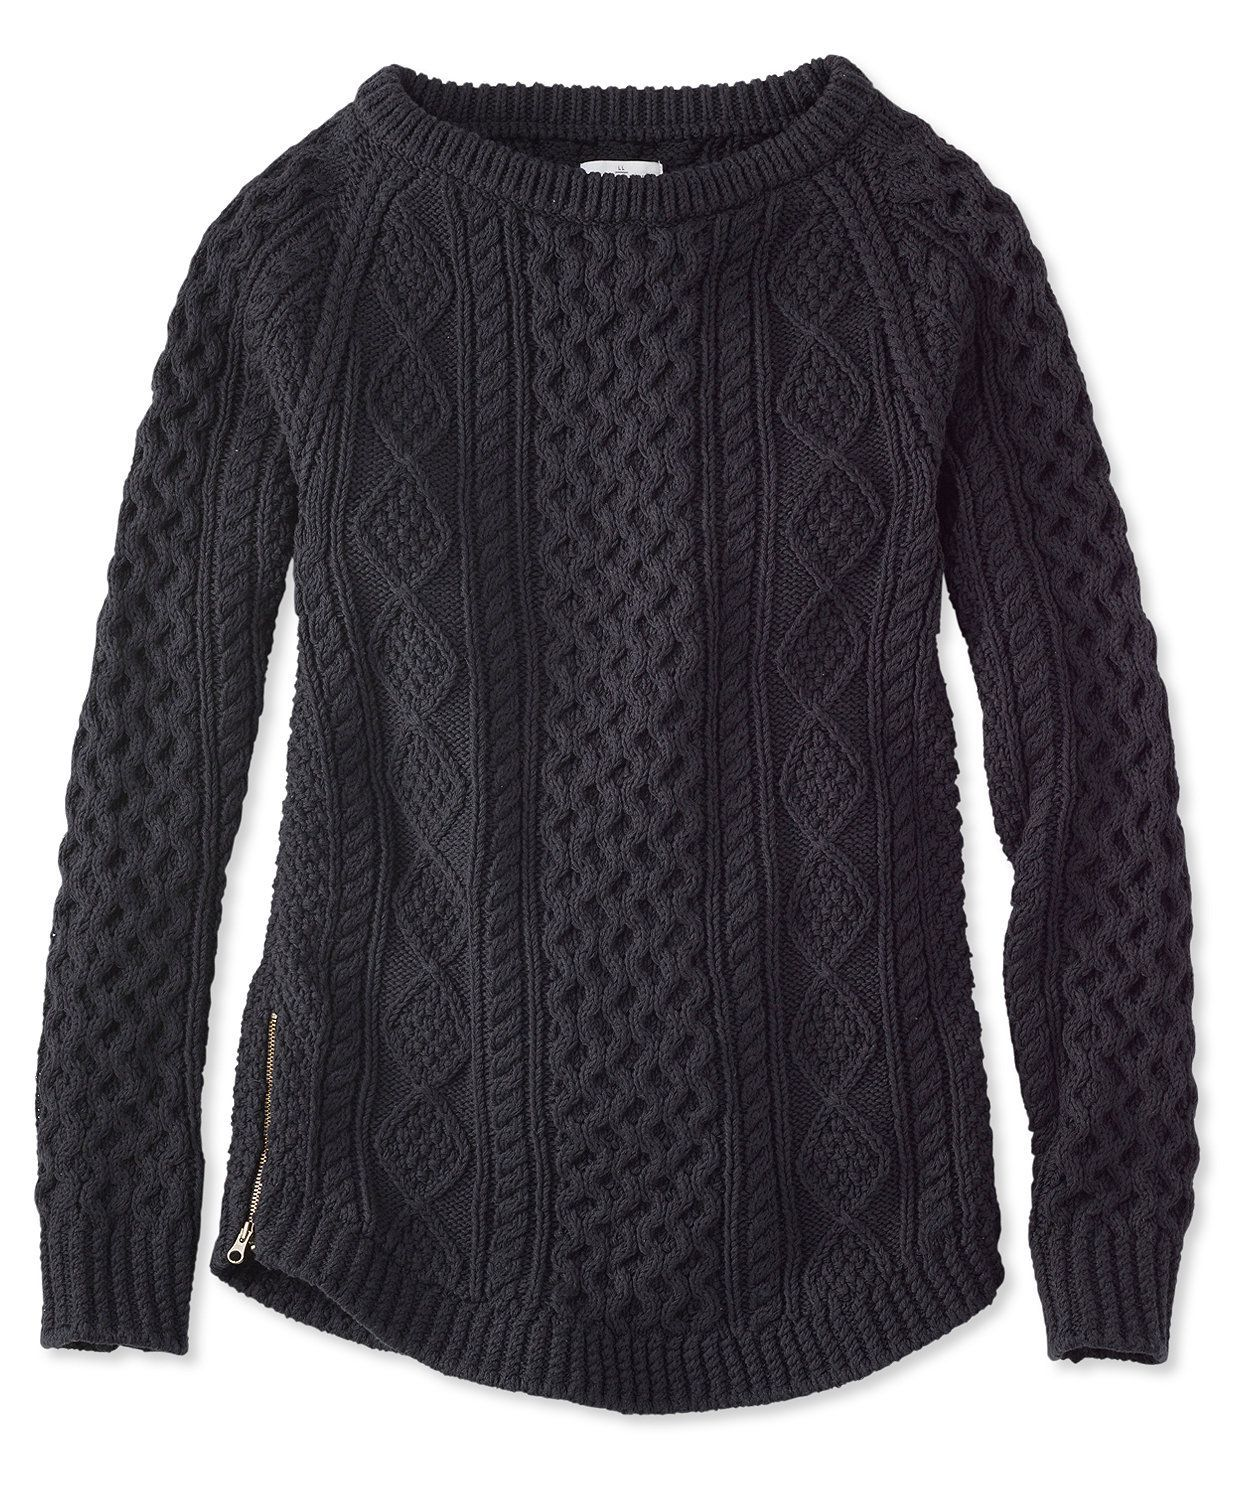 Signature Cotton Fisherman Tunic Sweater | WOMEN'S FALL FASHIONS ...